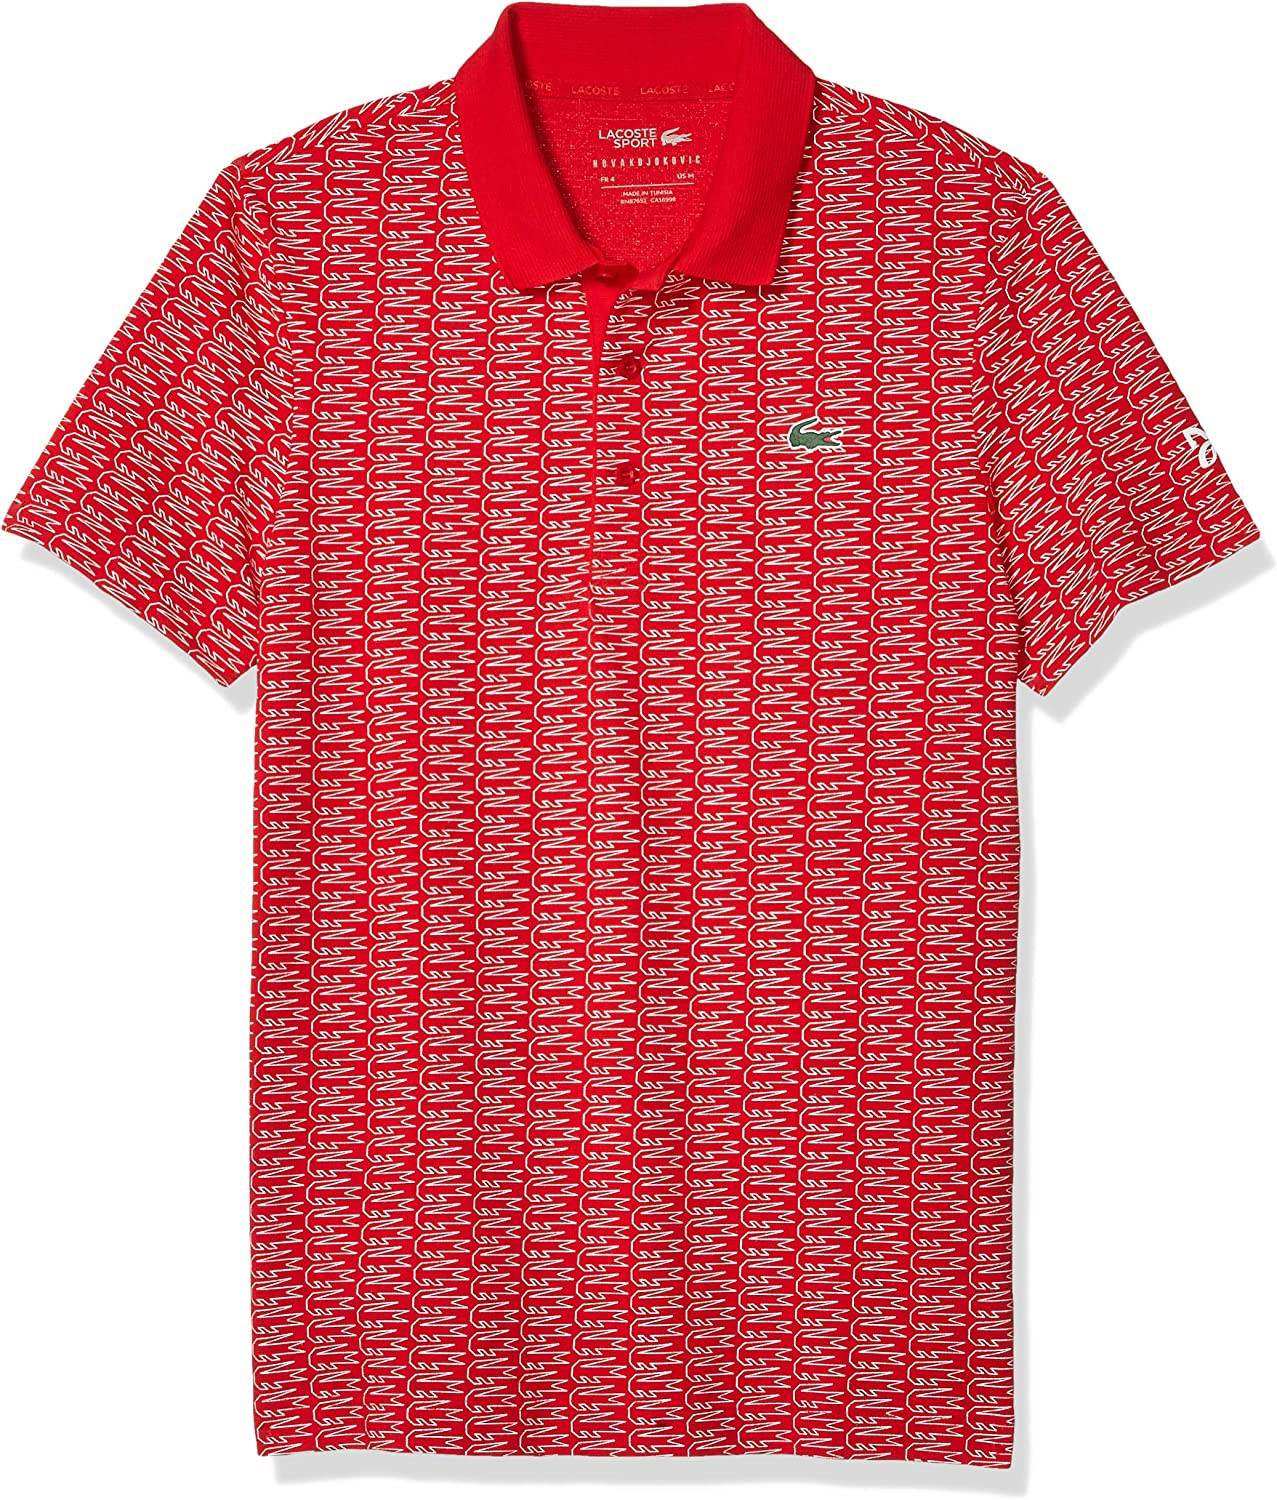 Lacoste Men S Sport Novak Djokovic Allover Croc Super Light Polo Shirt At Amazon Men S Clothing Store